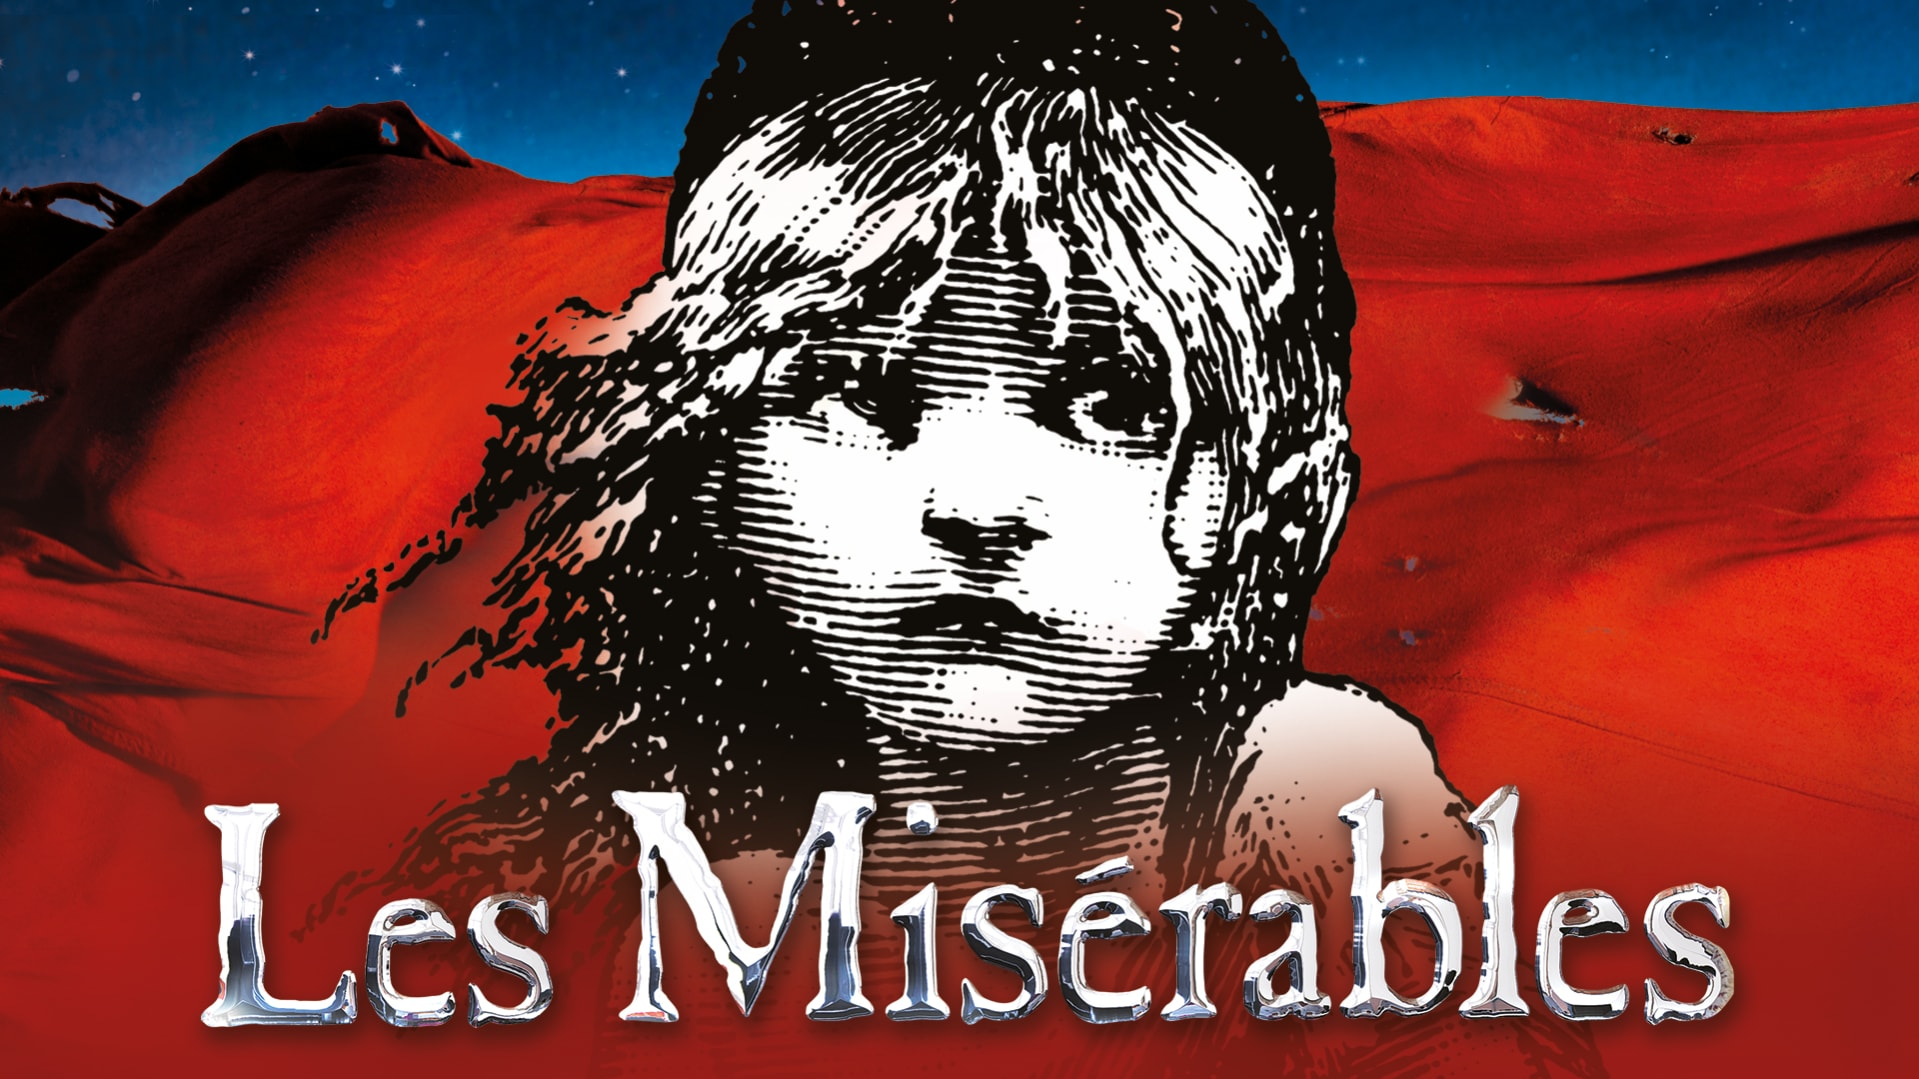 Les Miserables at The Bristol Hippodrome